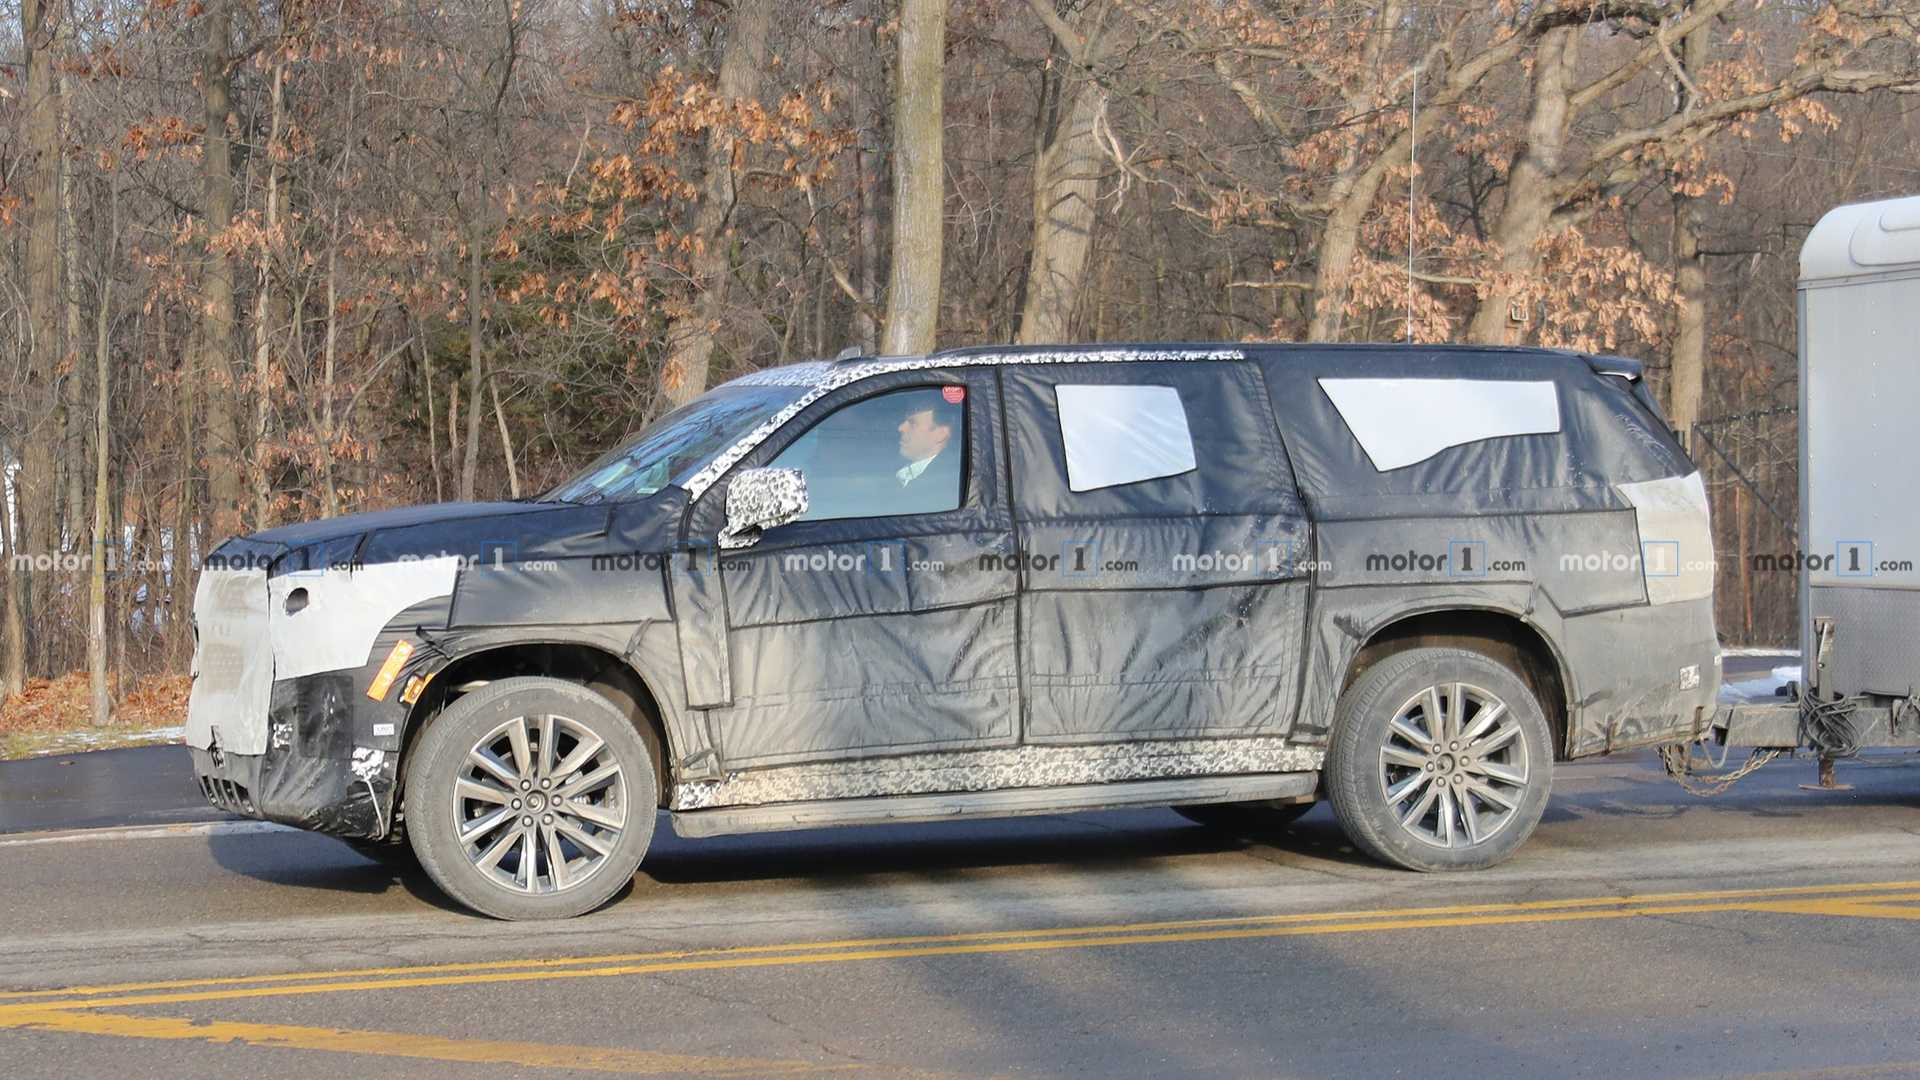 93 A Build 2020 Cadillac Escalade Price And Release Date